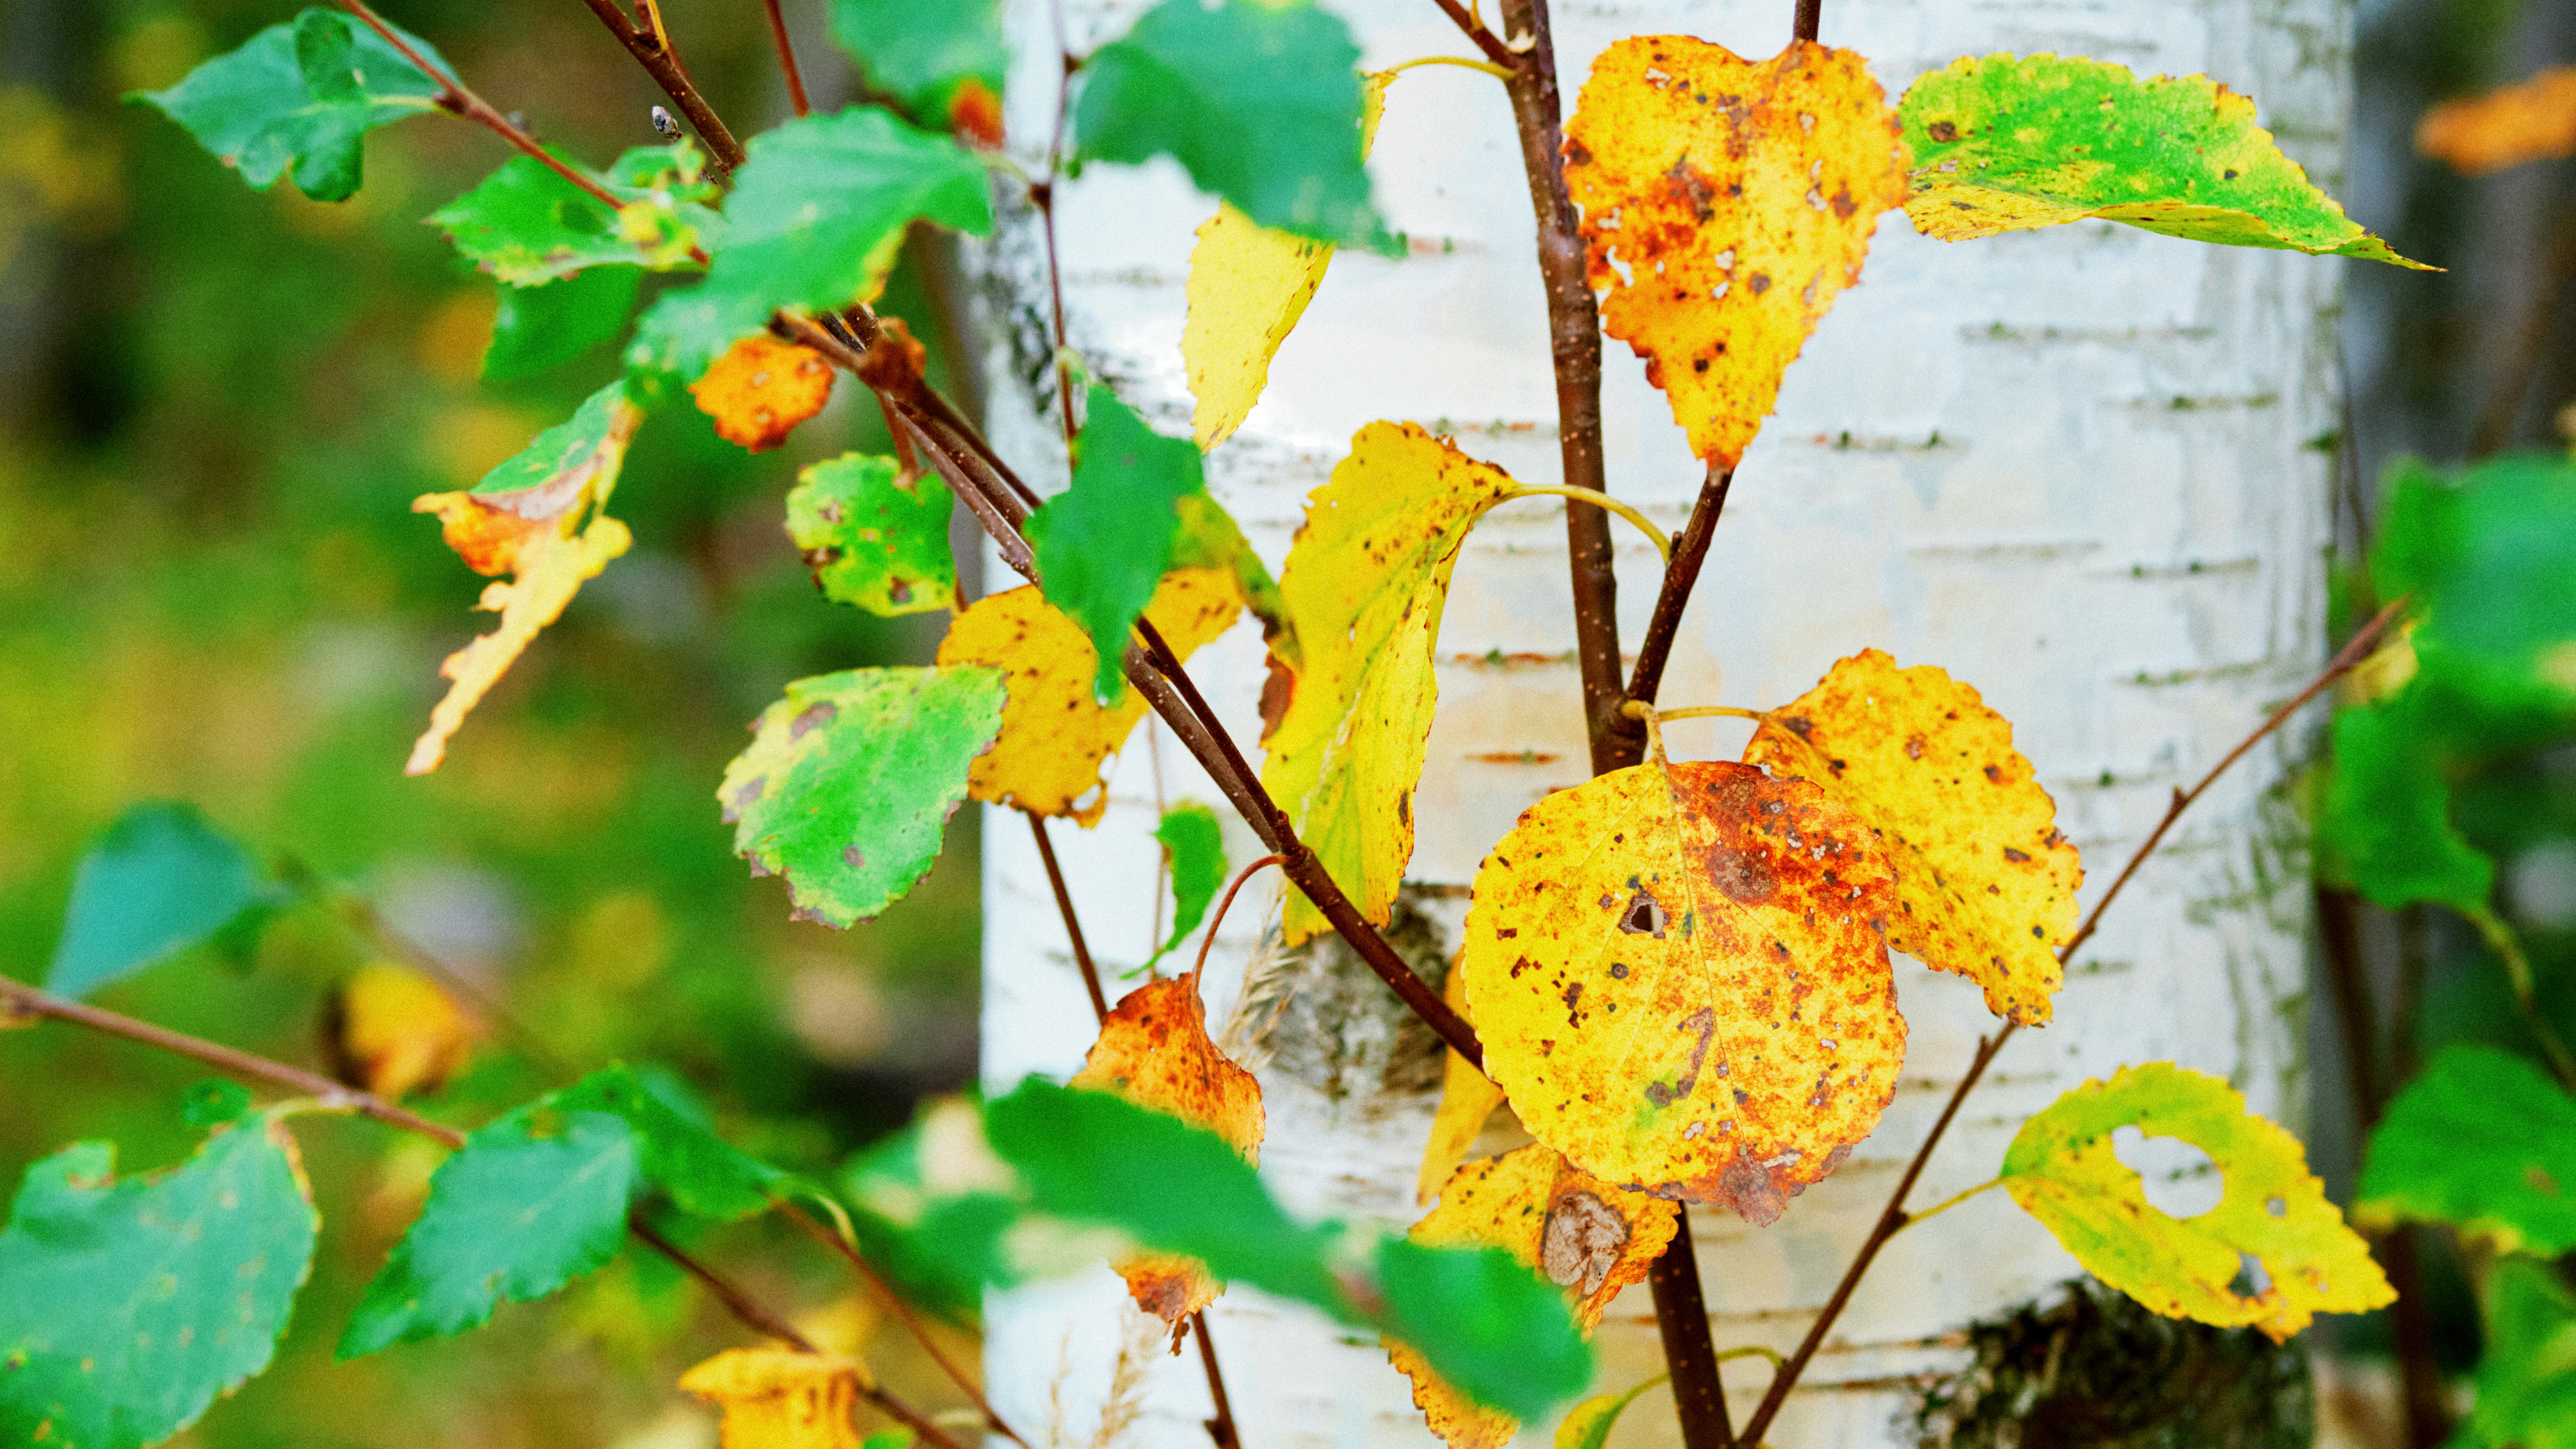 birch, with both green and yellow-orange leaves